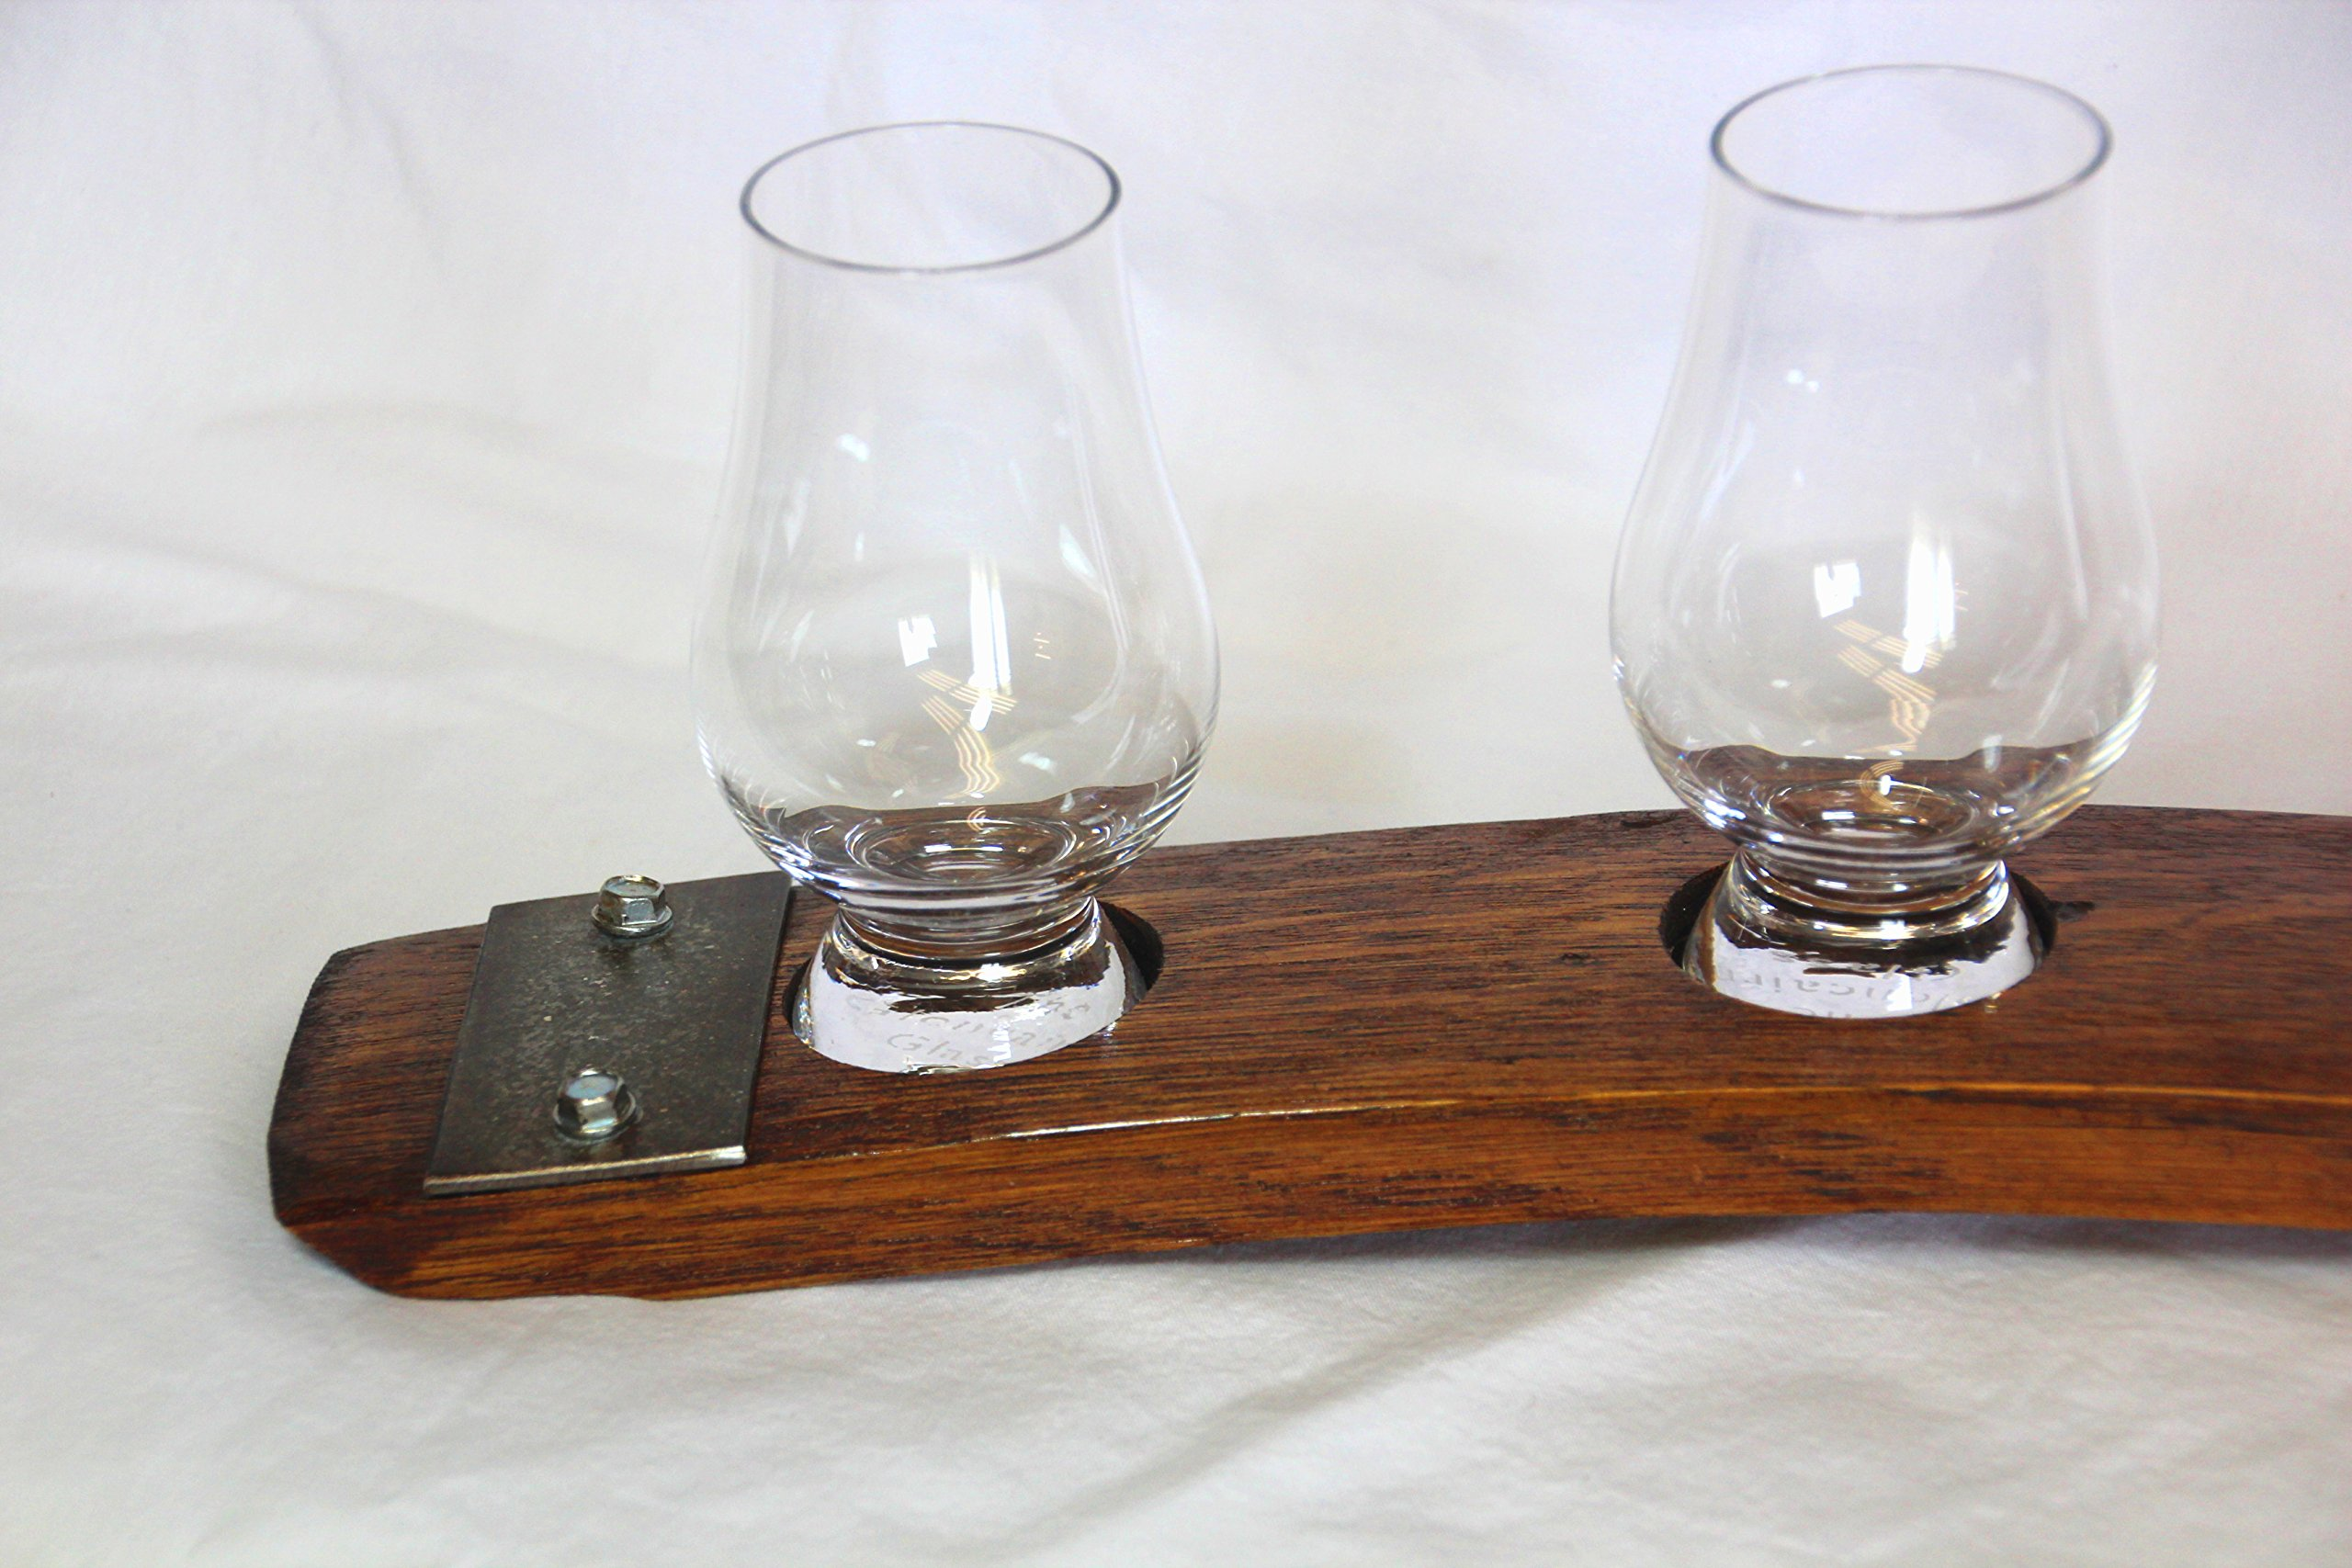 Premium Barrel Stave Whiskey Flight, Scotch Flight, Bourbon Flight, Crystal Glencairn Glass Flight (Red Mahogany) by Barrel-Art (Image #6)